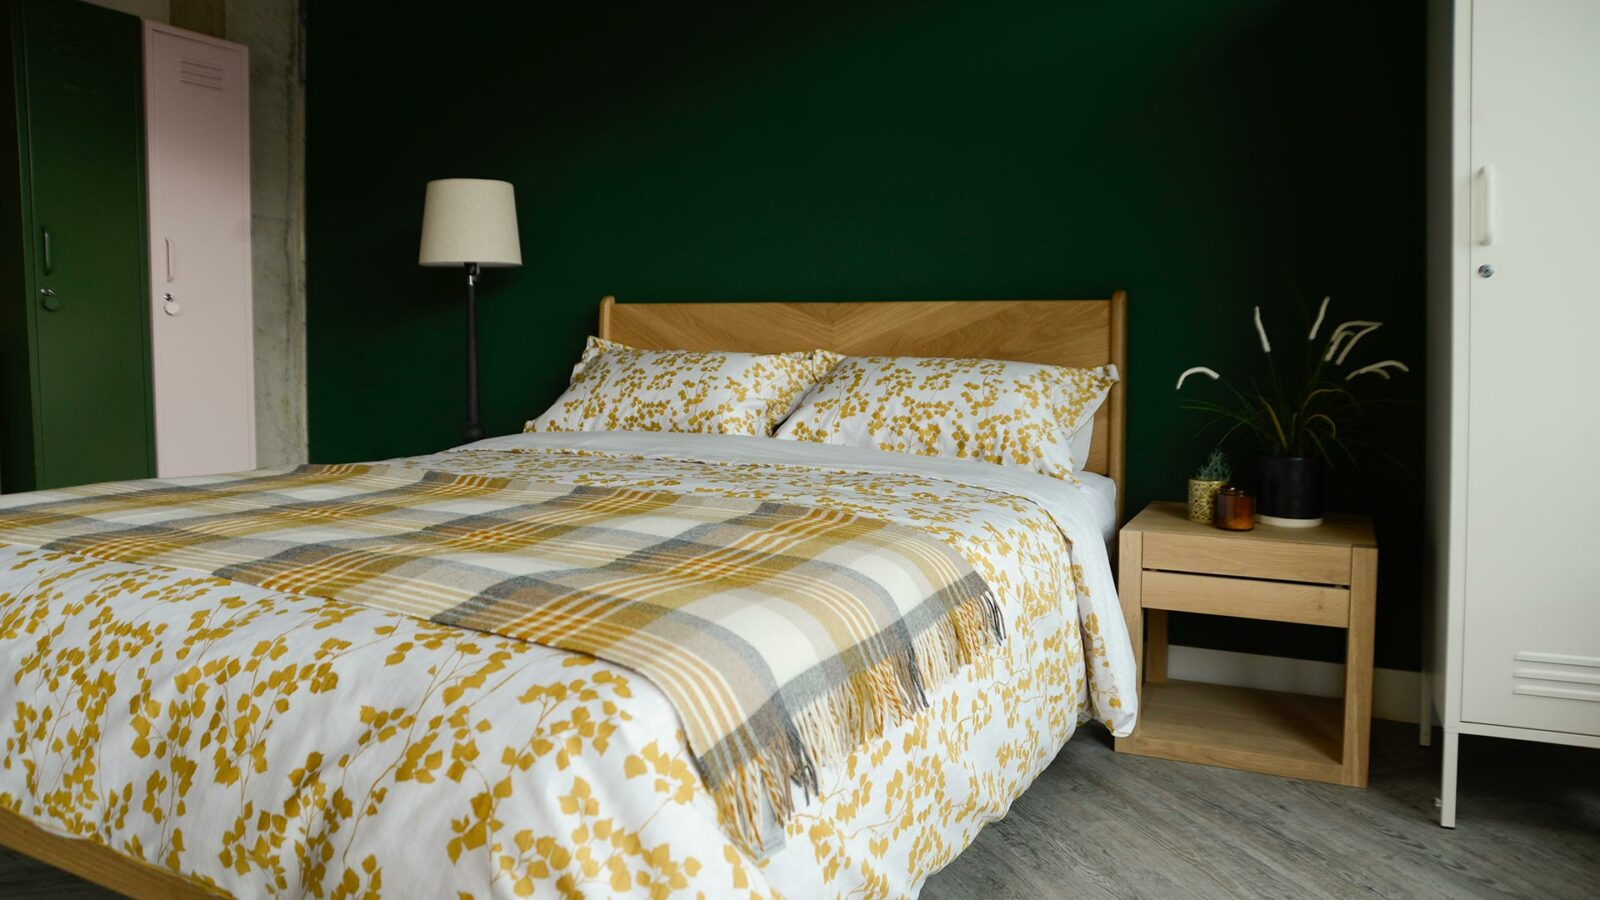 Duvet cover set in white with a mustard yellow leaf print